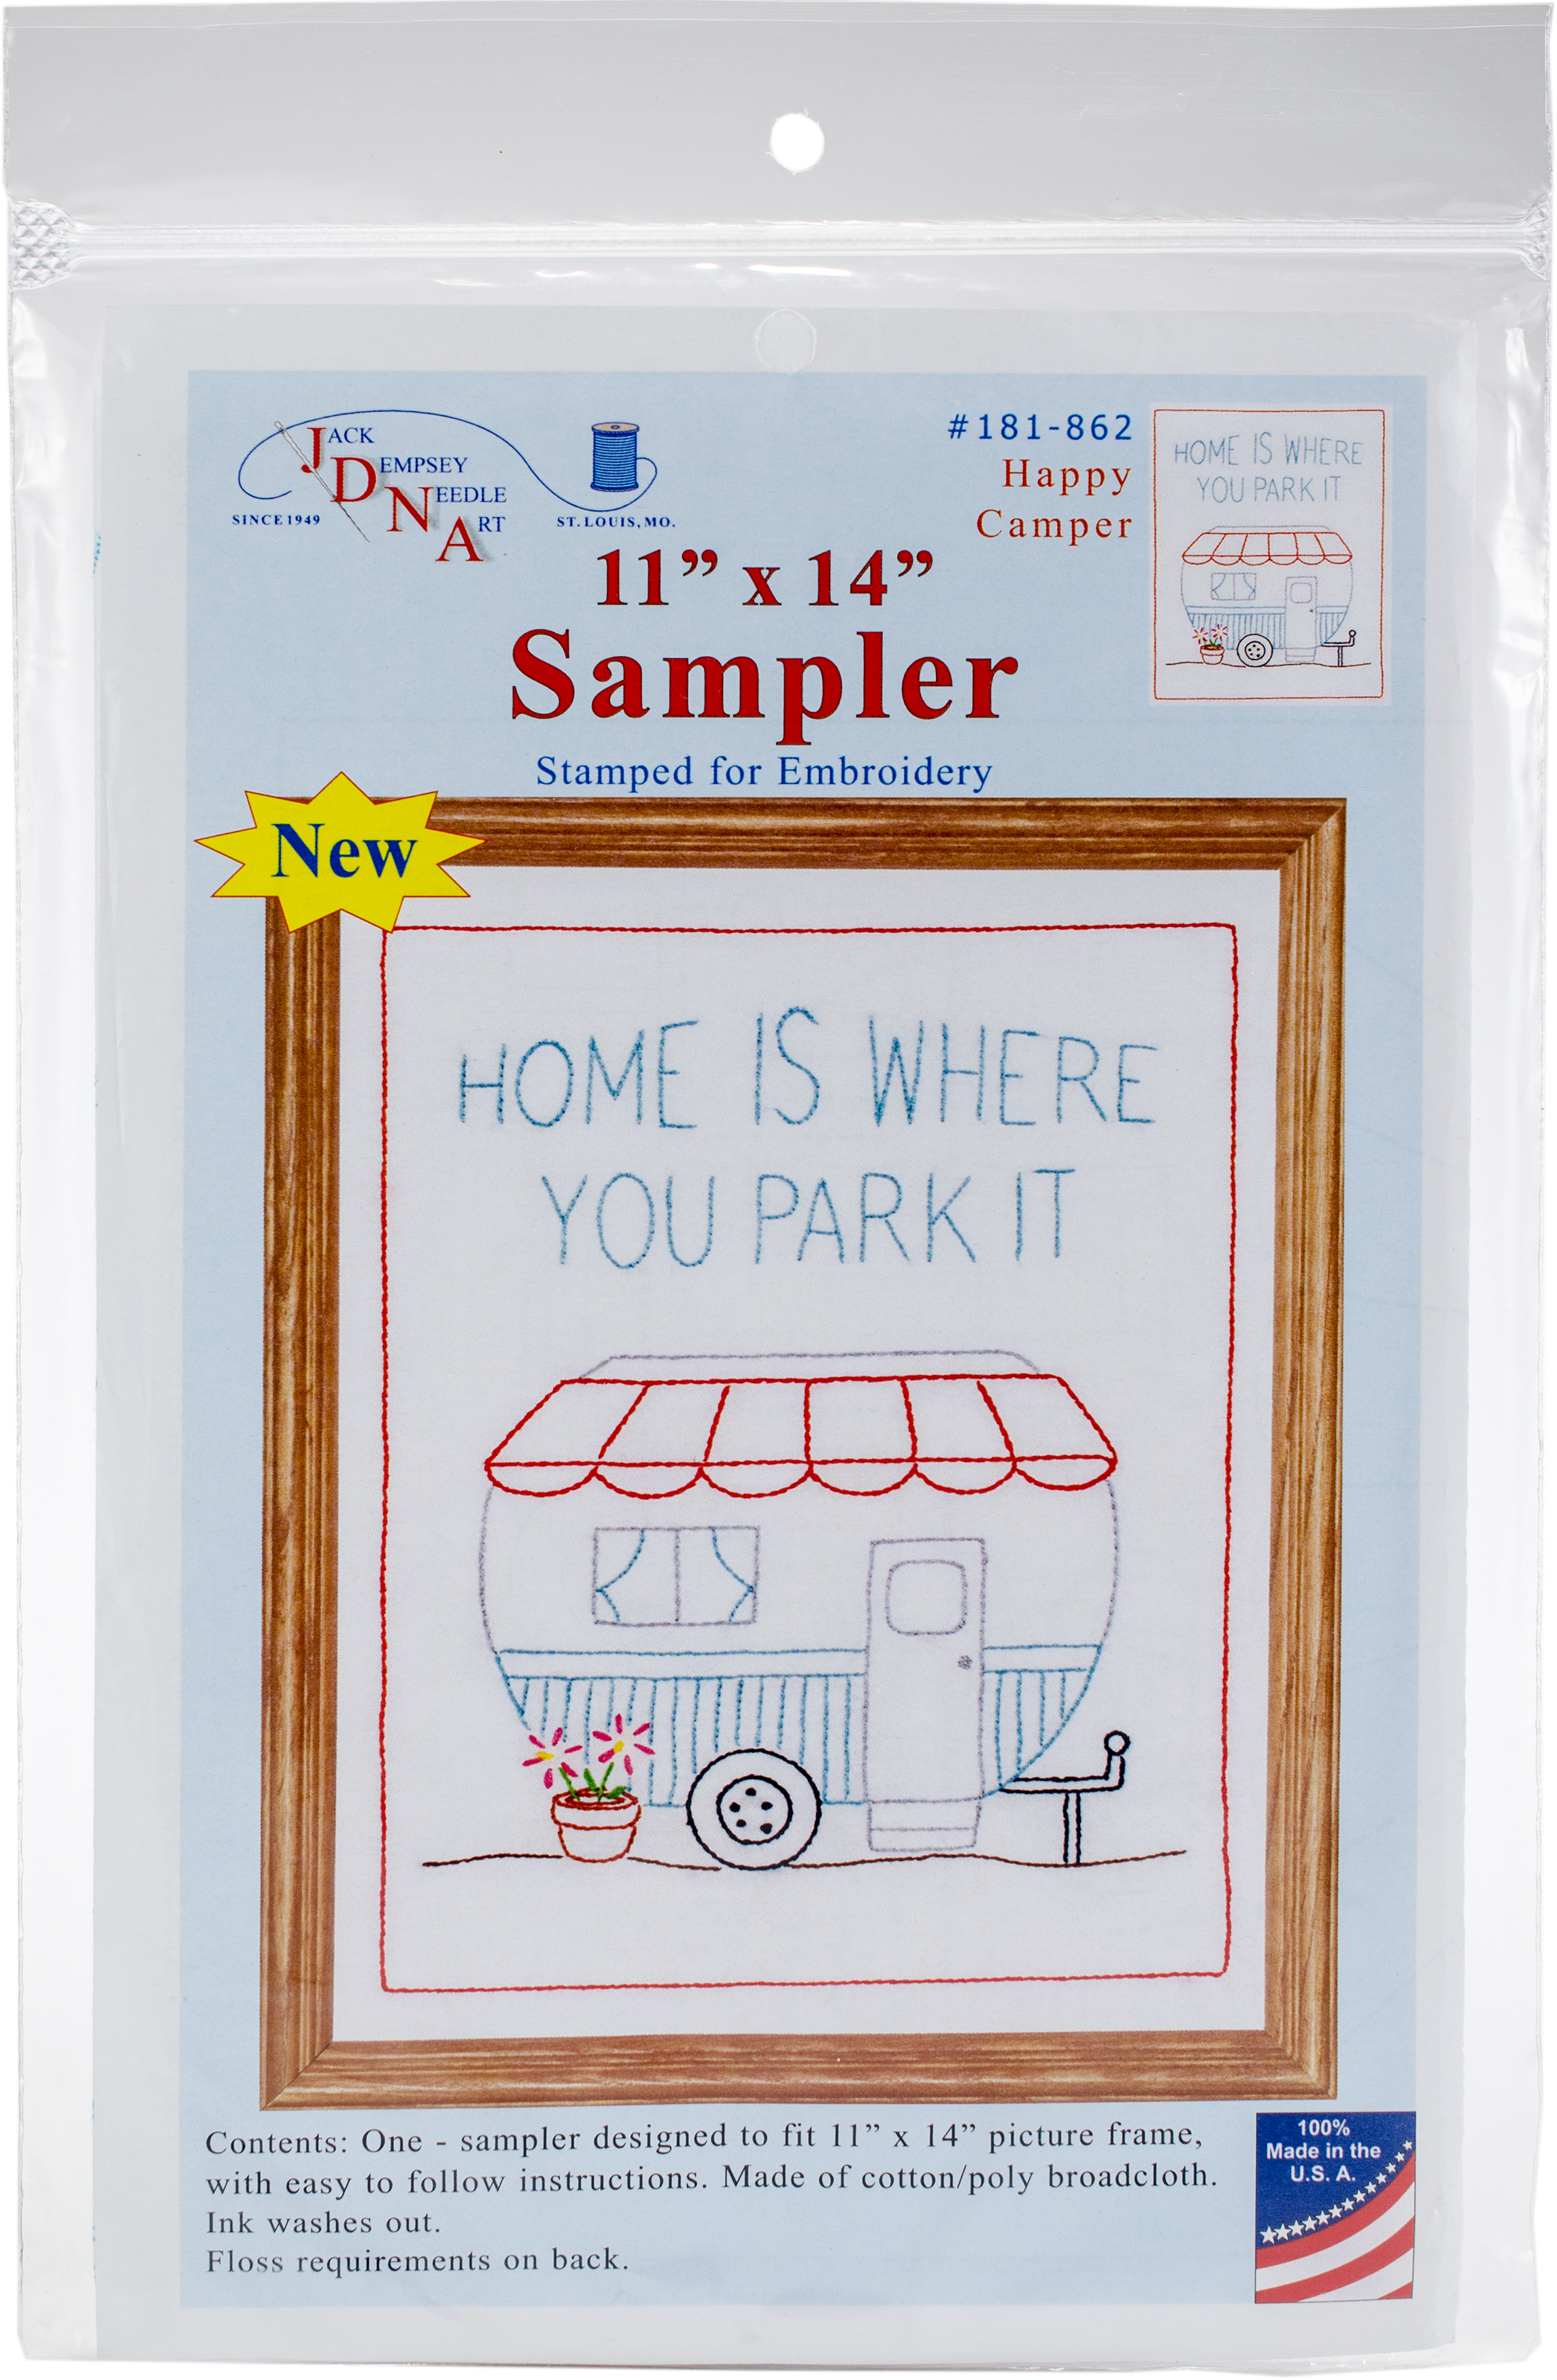 Stamped Embroidery Sampler 11in x 14in - Happy Camper